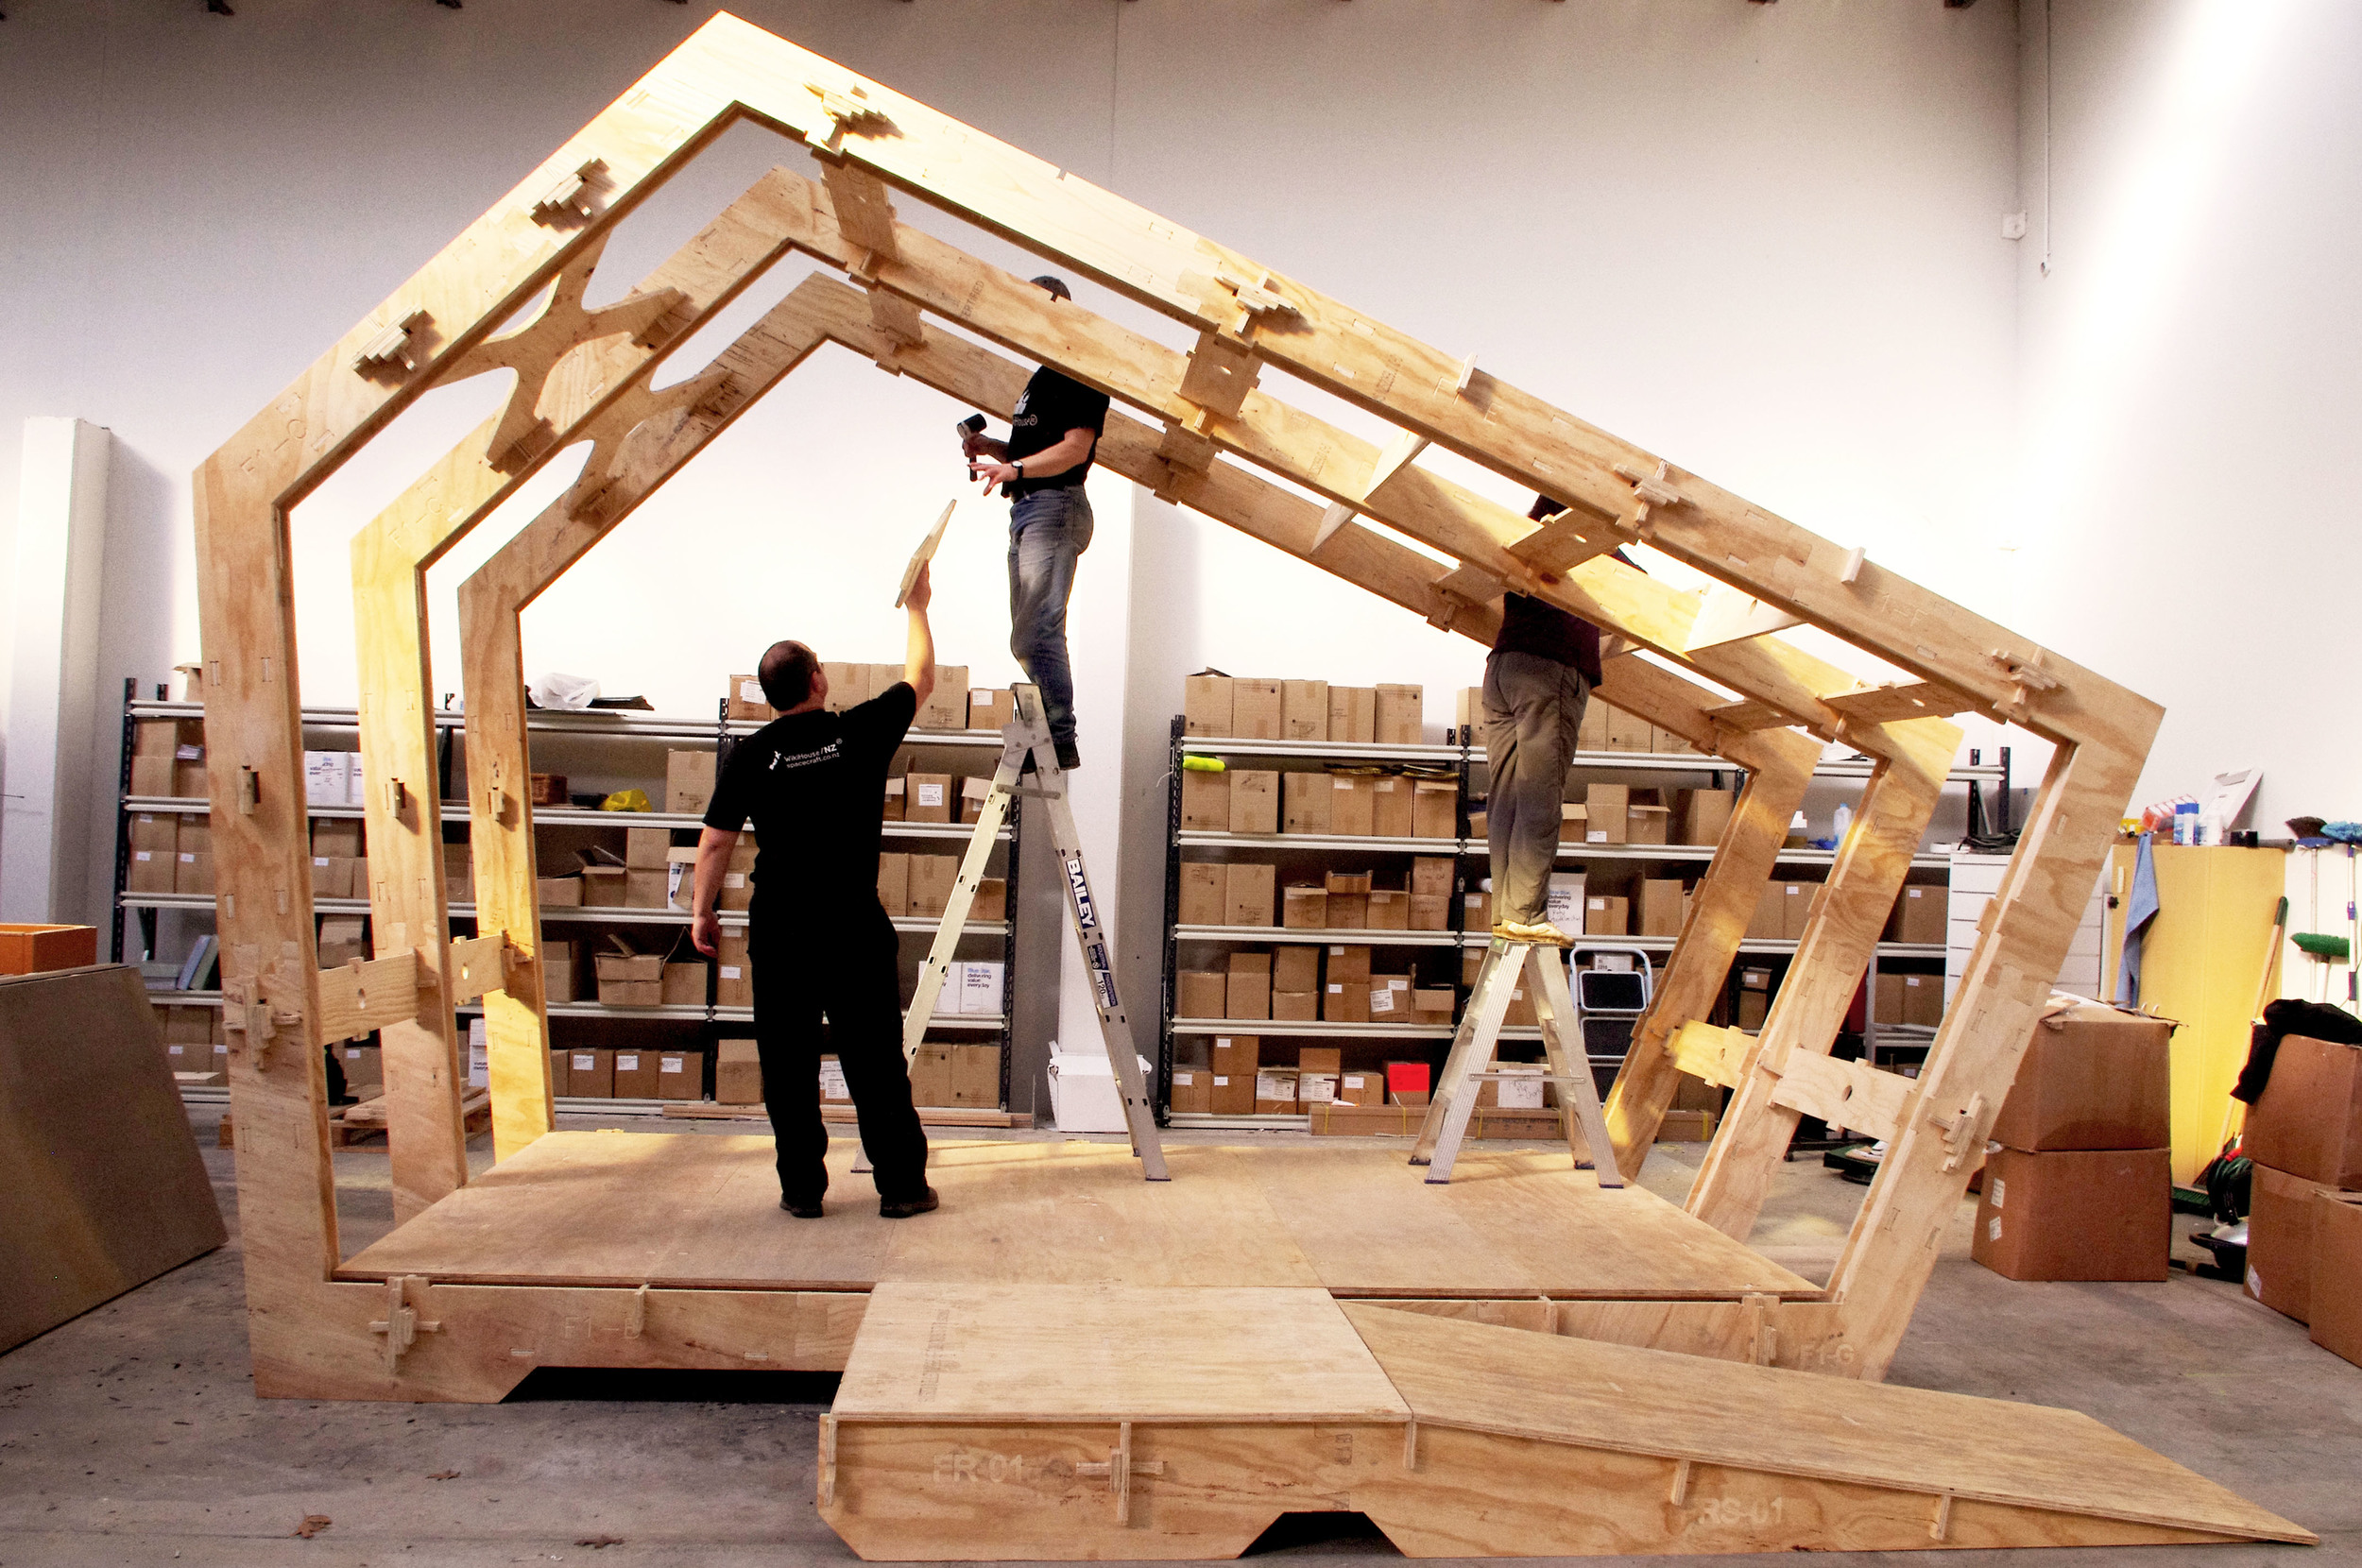 Space Craft: developing WikiHouse in New Zealand